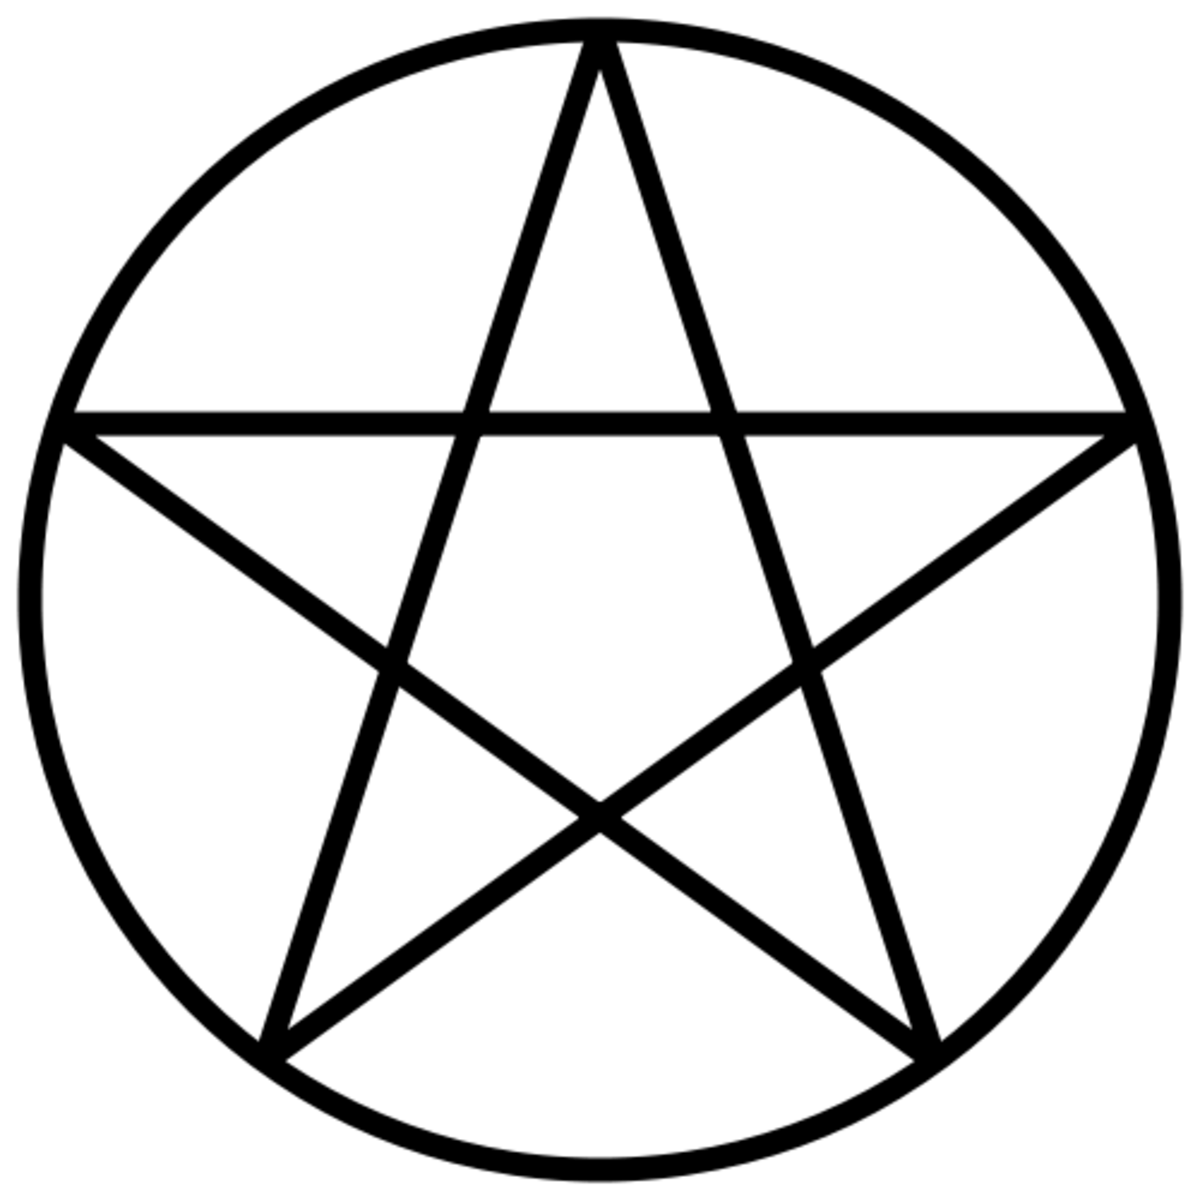 The star, usually portrayed in a circle